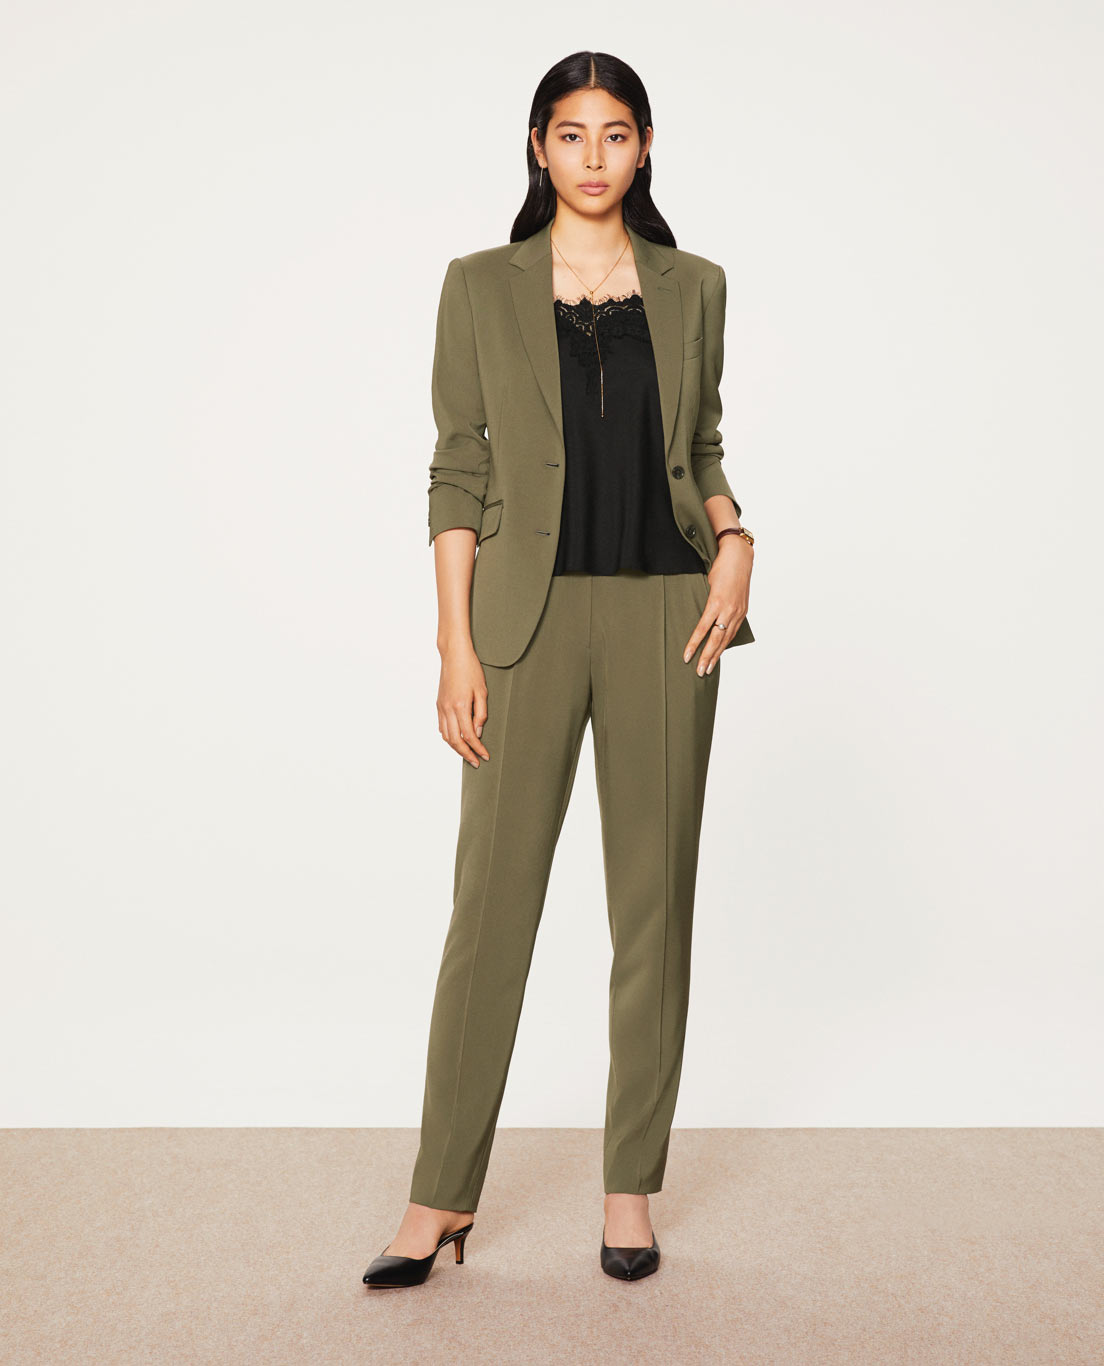 COMFORT TAILORED JACKET・TAPERED PANTS: 5447 / WASHABLE / STRETCH / SILKY TOUCH / KHAKI